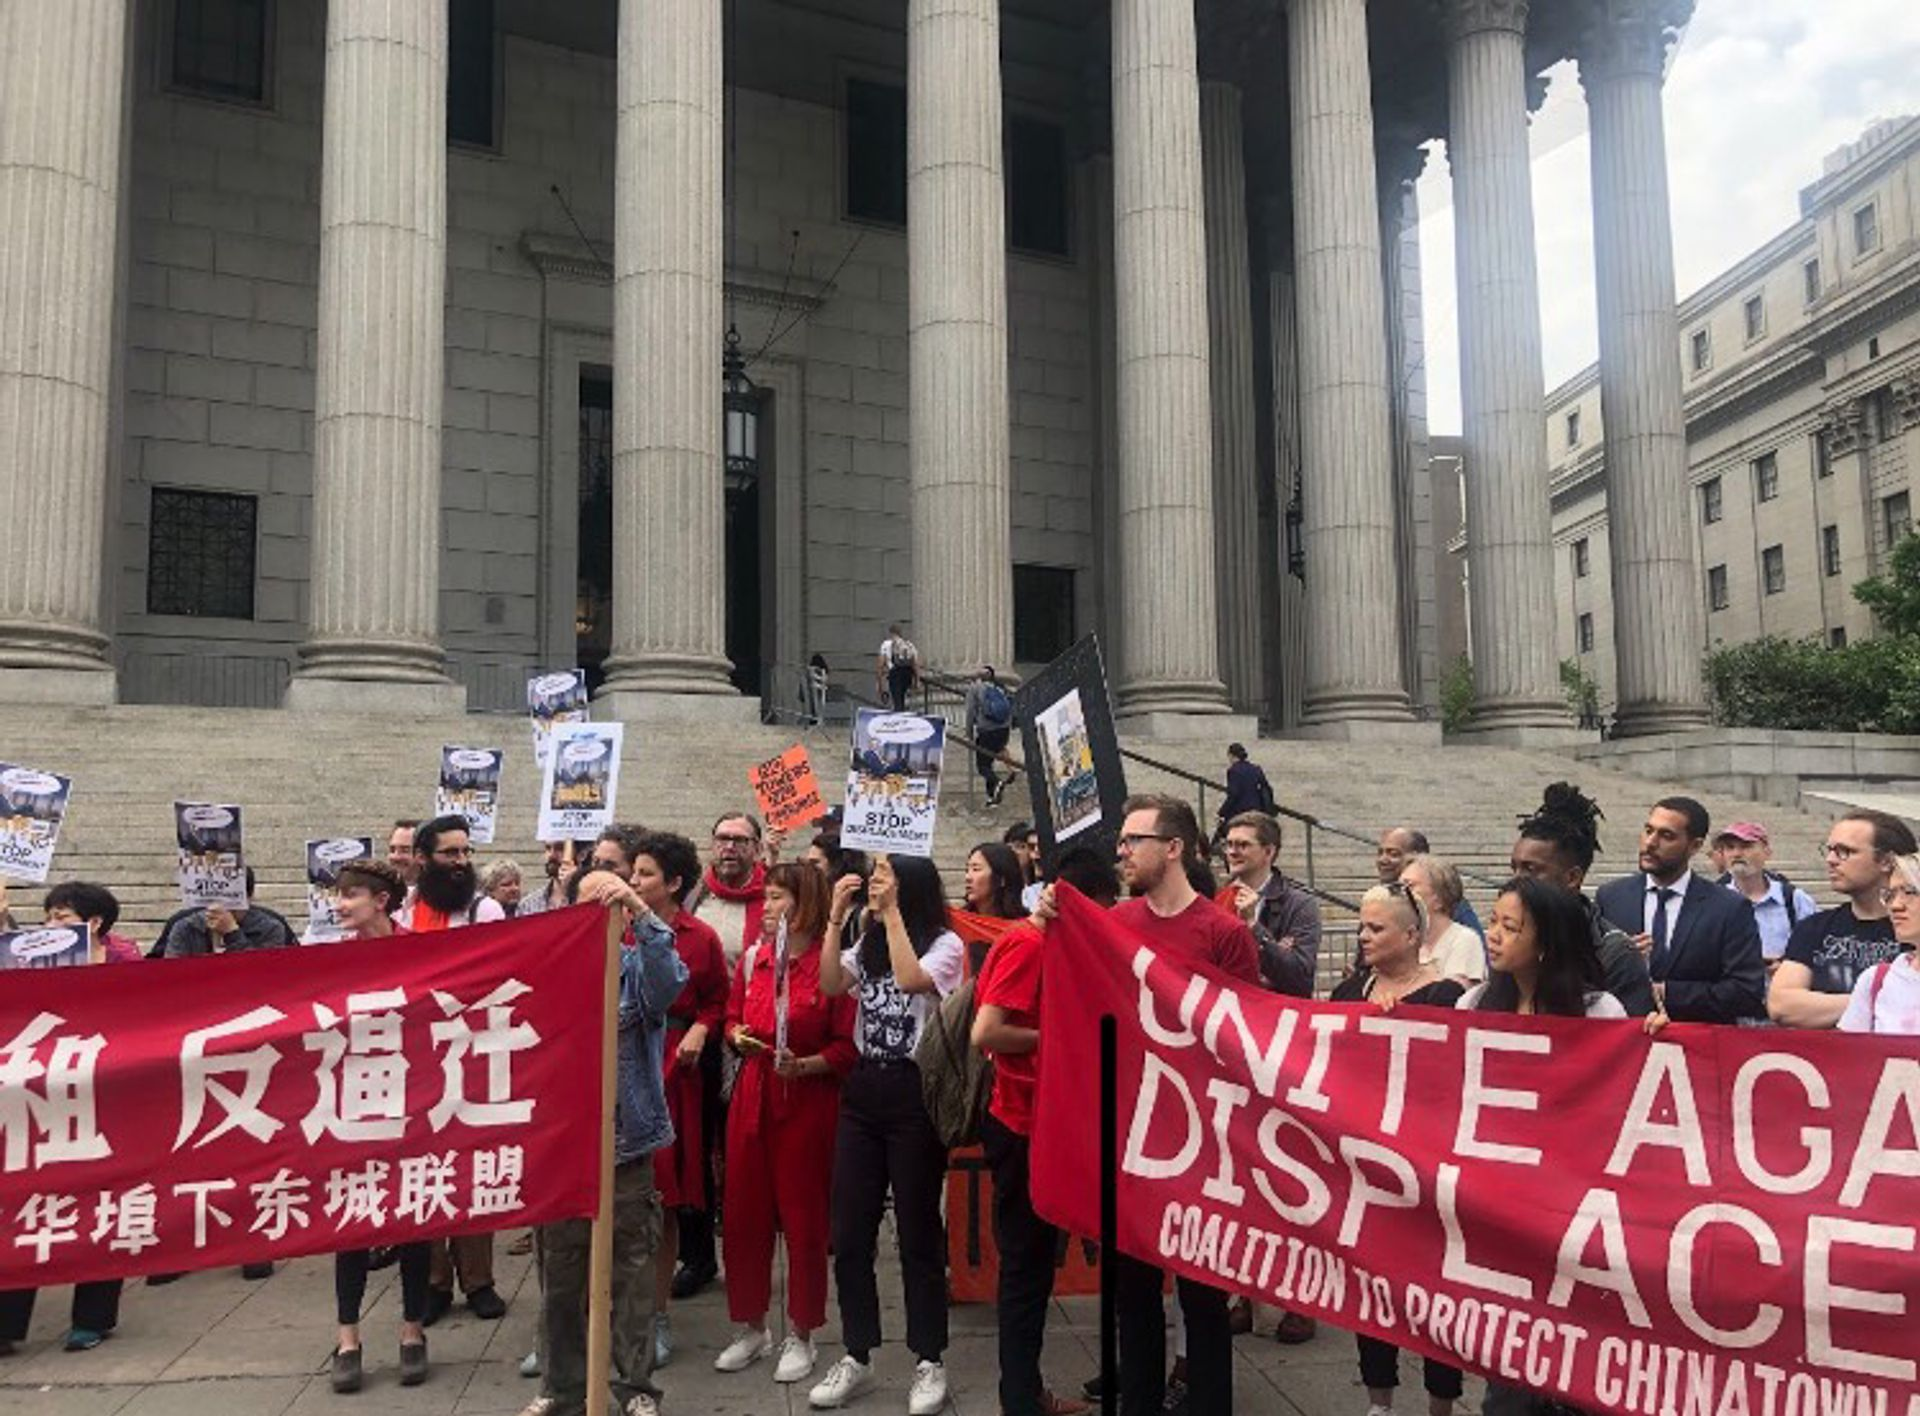 Local business owners and activists were joined by artists and gallery owners for a press conference on the steps of a Manhattan court house before the hearing Photo: Caitlin Kelmar